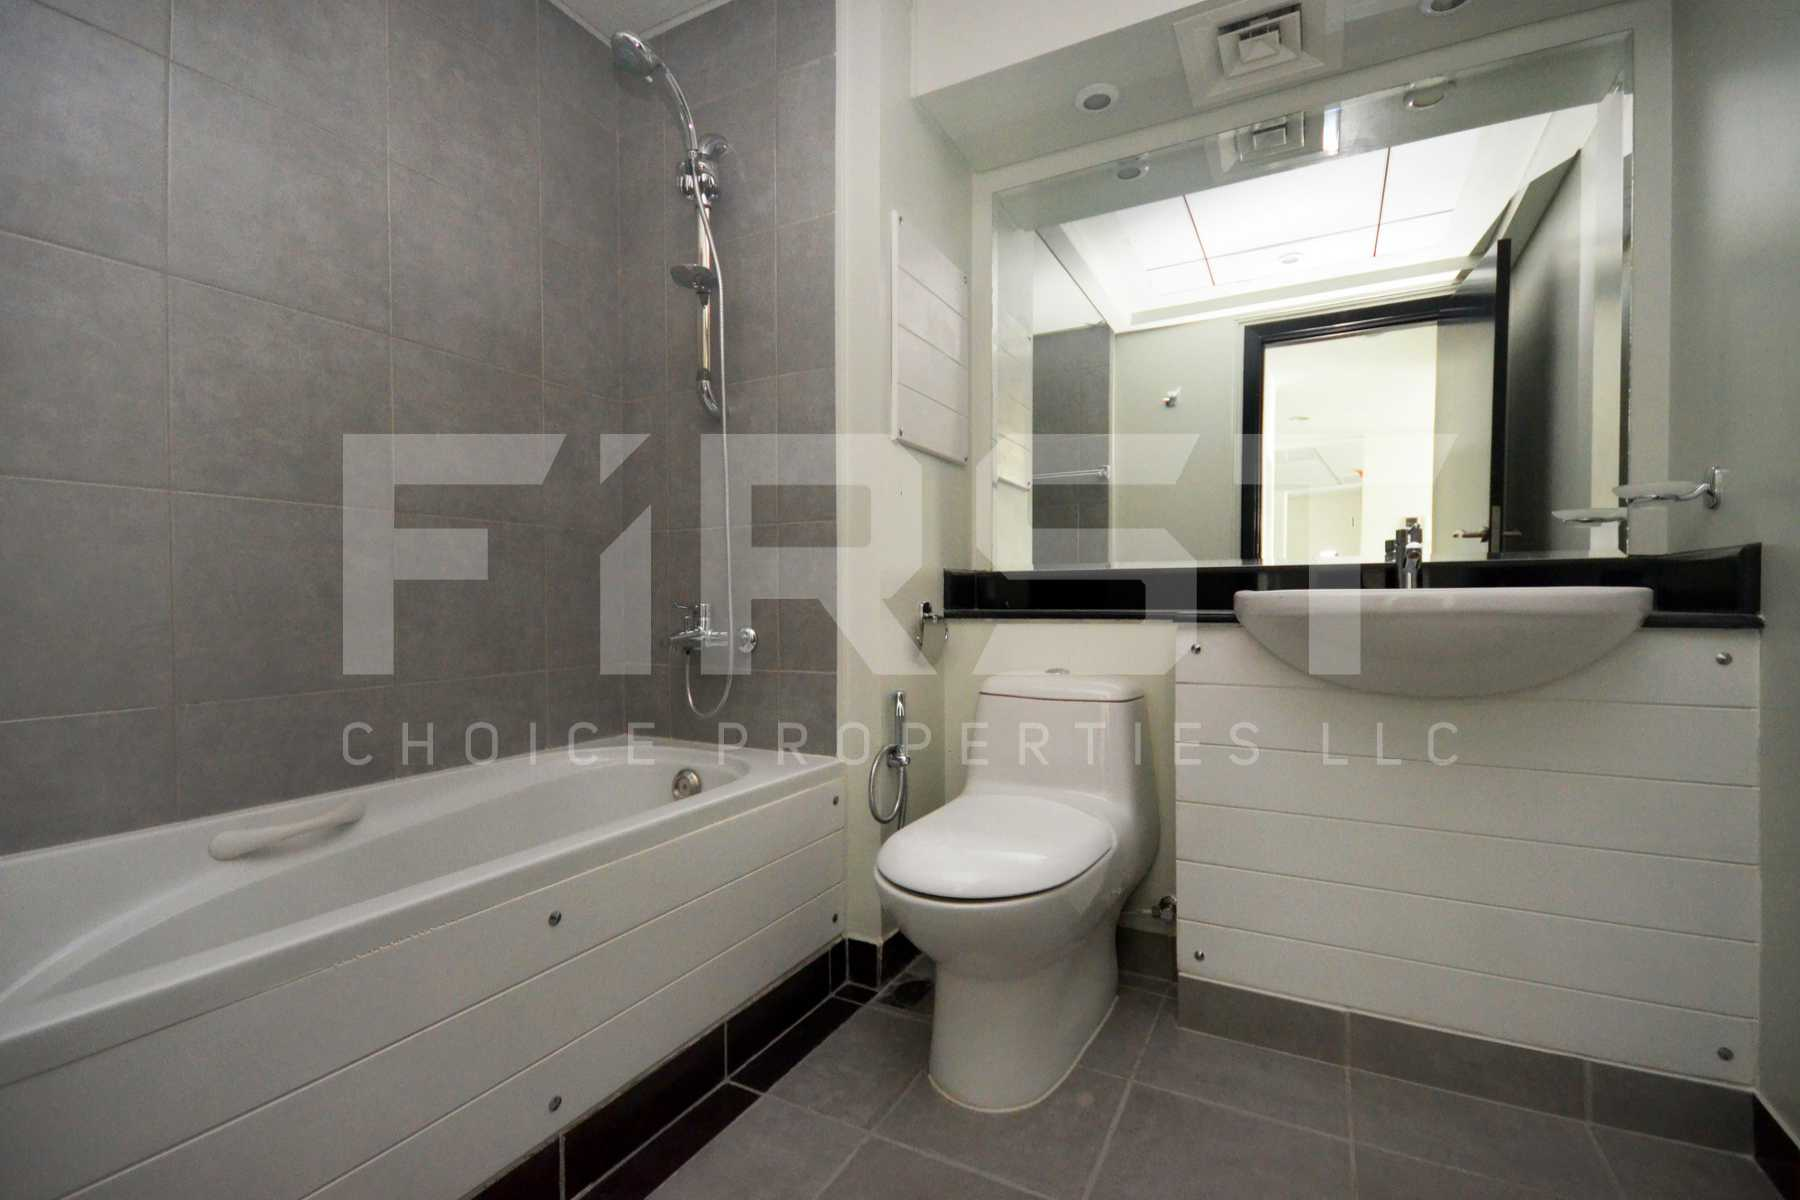 9. Internal Photo of 1 Bedroom Apartment Type C in Al Reef Downtown Al Reef Abu Dhabi UAE 103 sq.m 1108 sq.ft (8).jpg